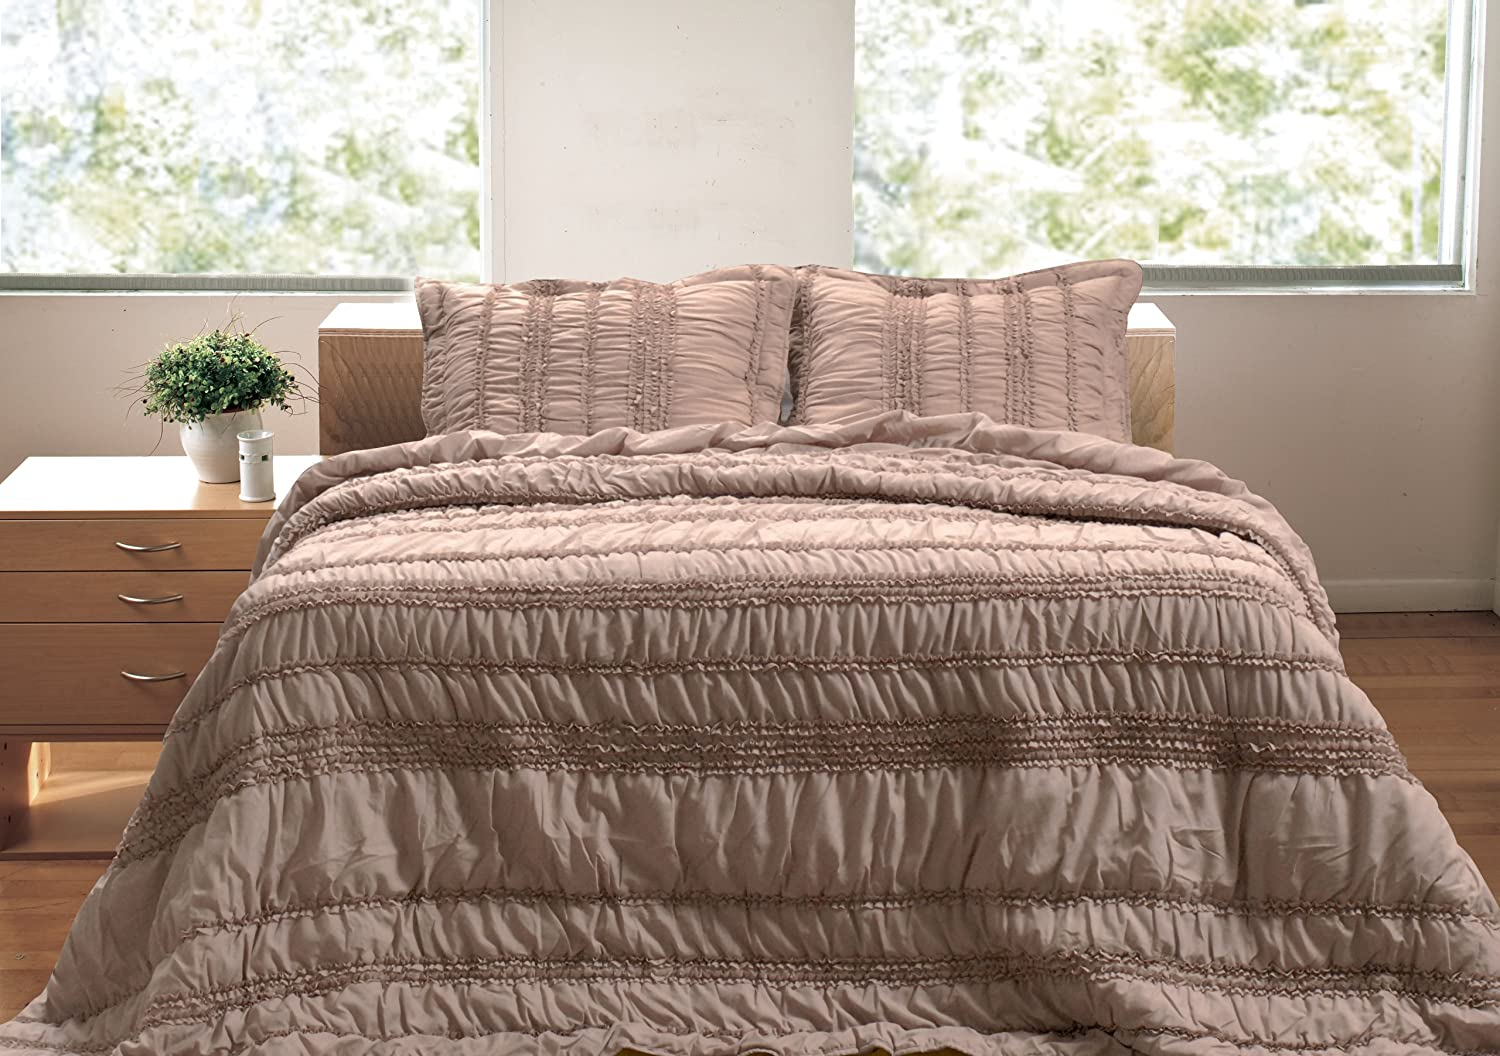 Greenland Home 2-Piece Tiana Quilt Set, Twin, Taupe